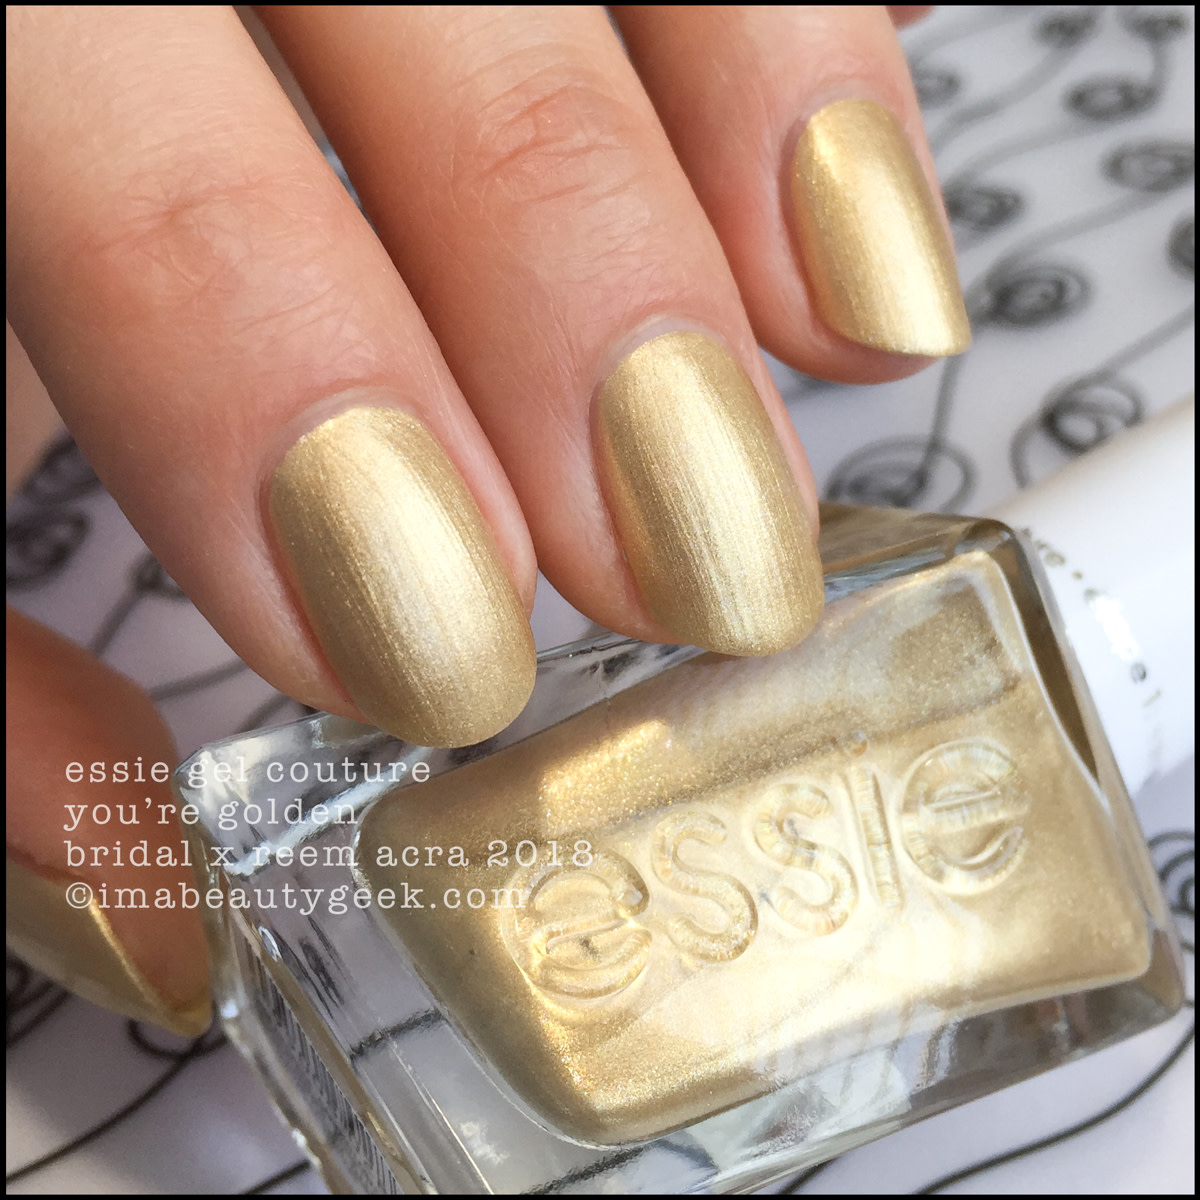 Essie You're Golden - Essie Bridal x Reem Acra Gel Couture 2018